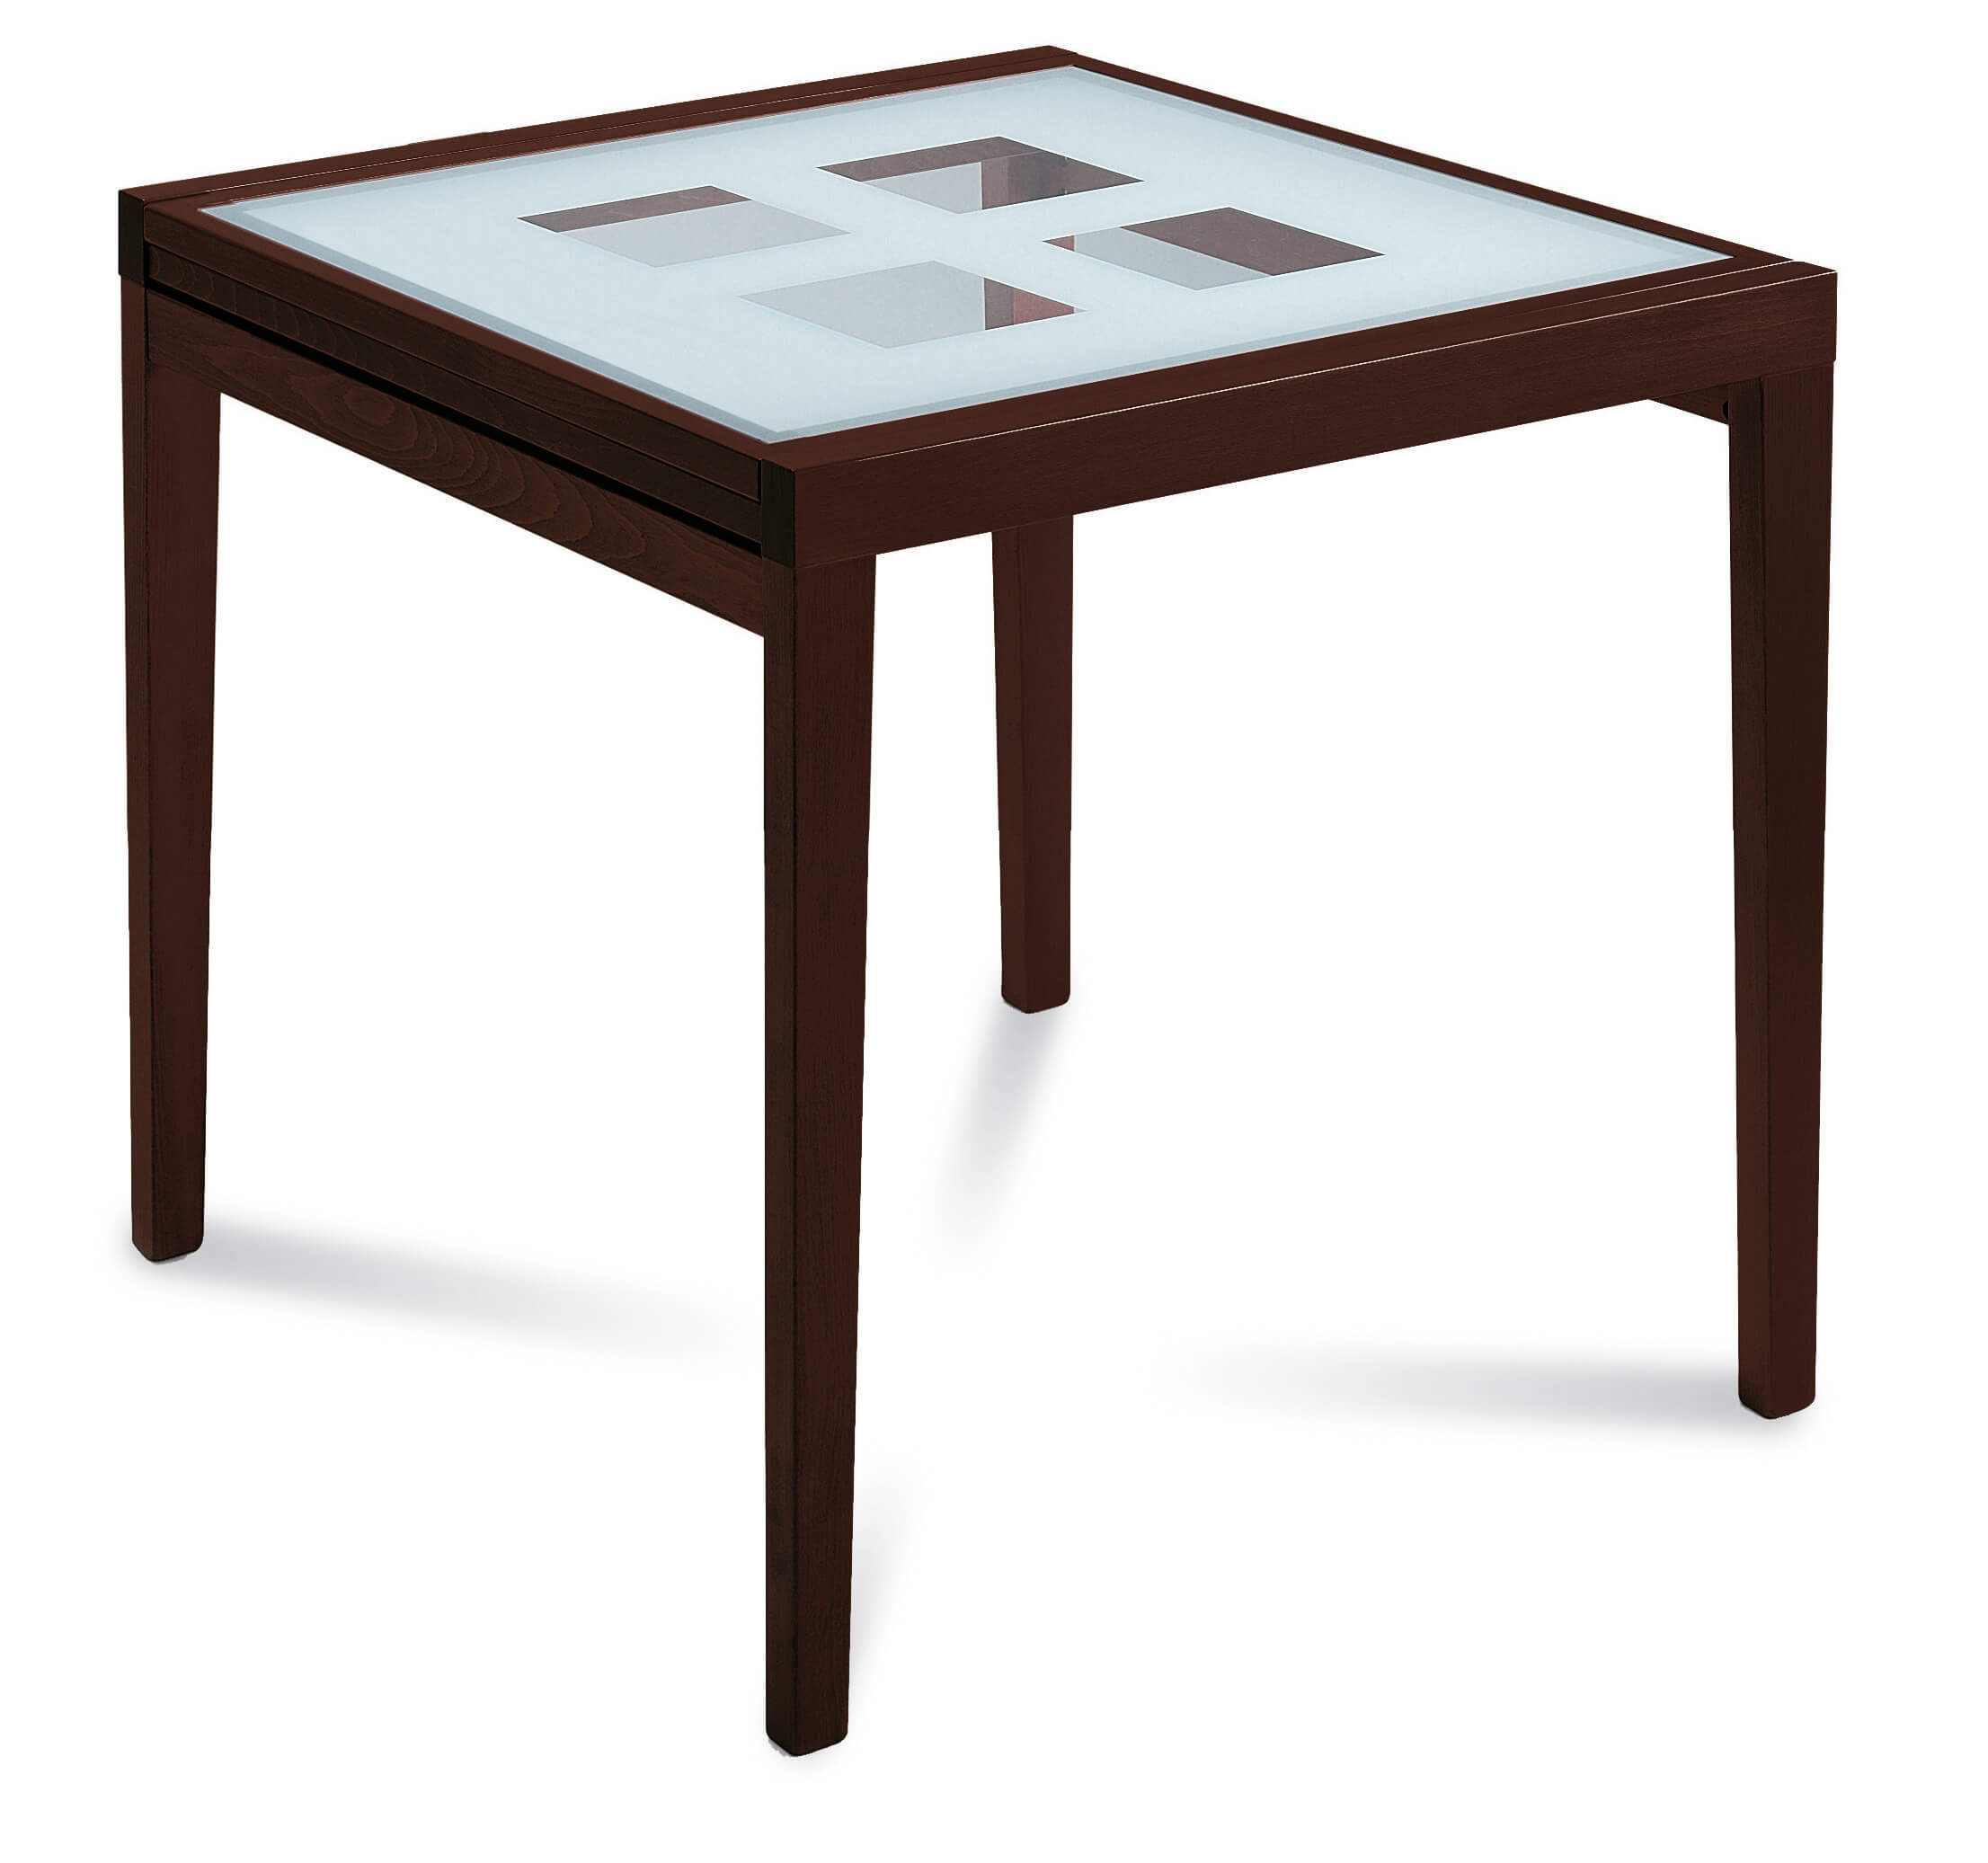 Poker-90 Square Extension Table by DomItalia, Italy